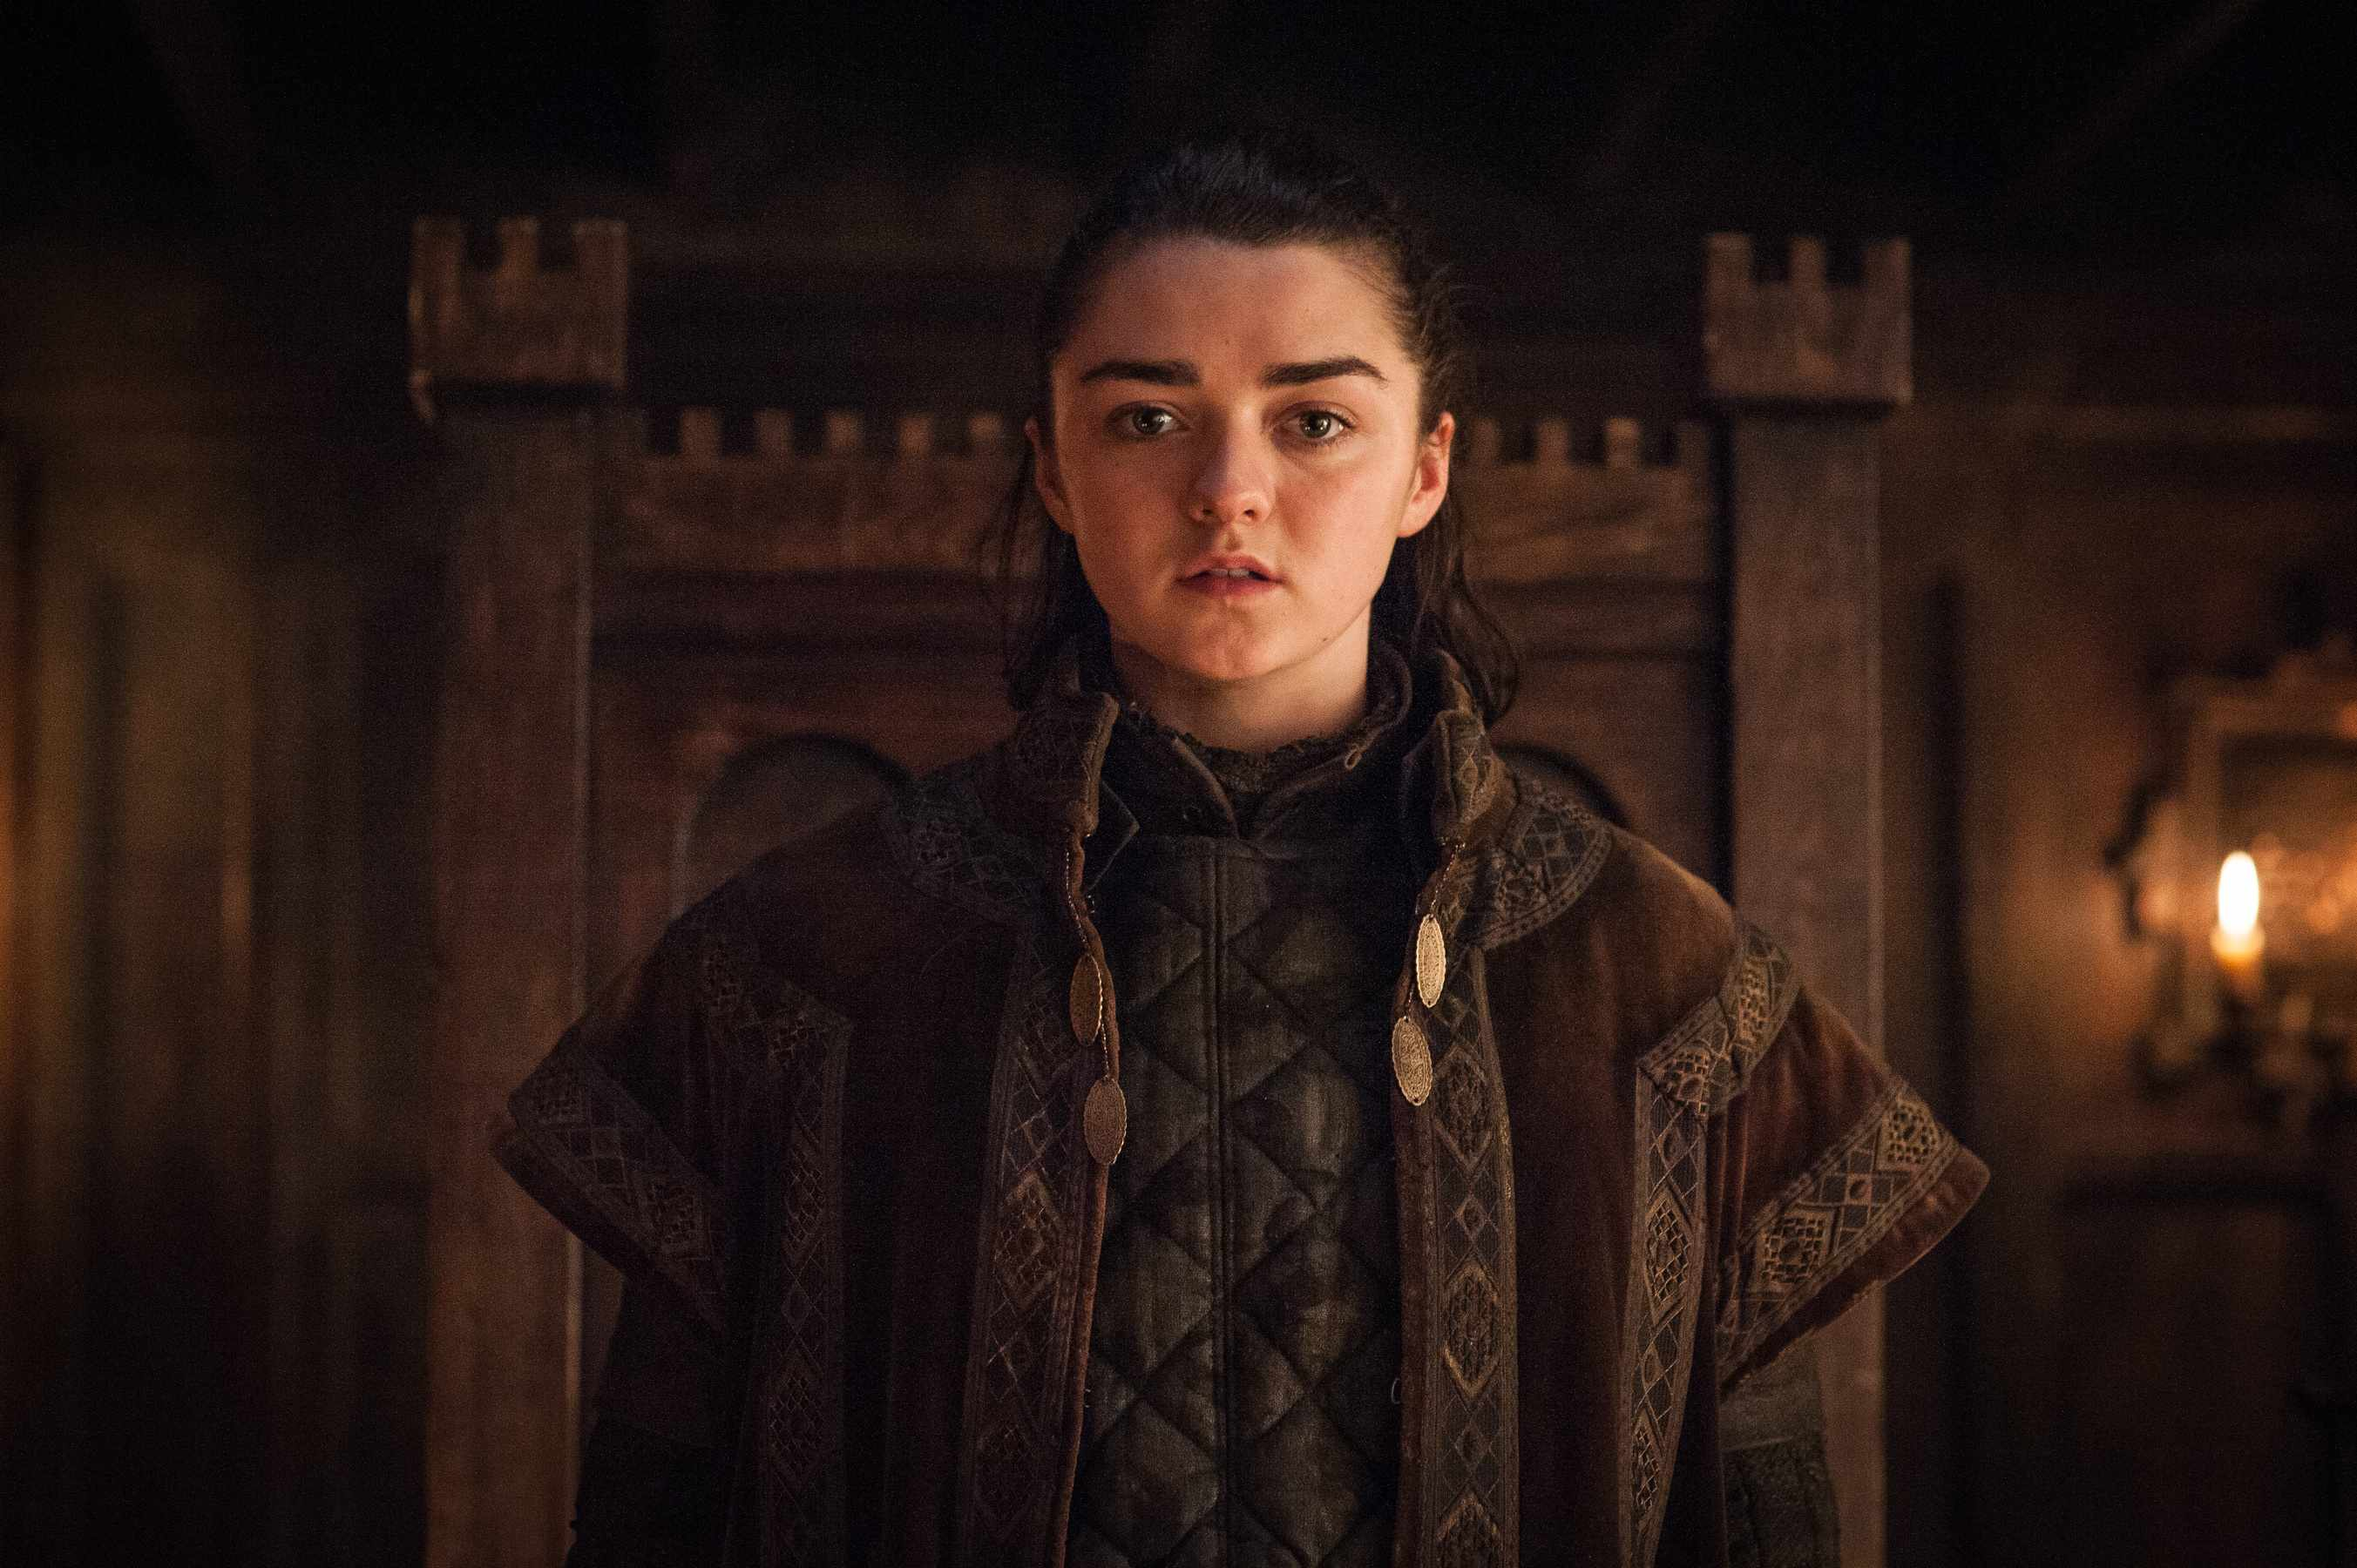 Maisie Williams as Arya Stark, HBO, TL, Sky pics